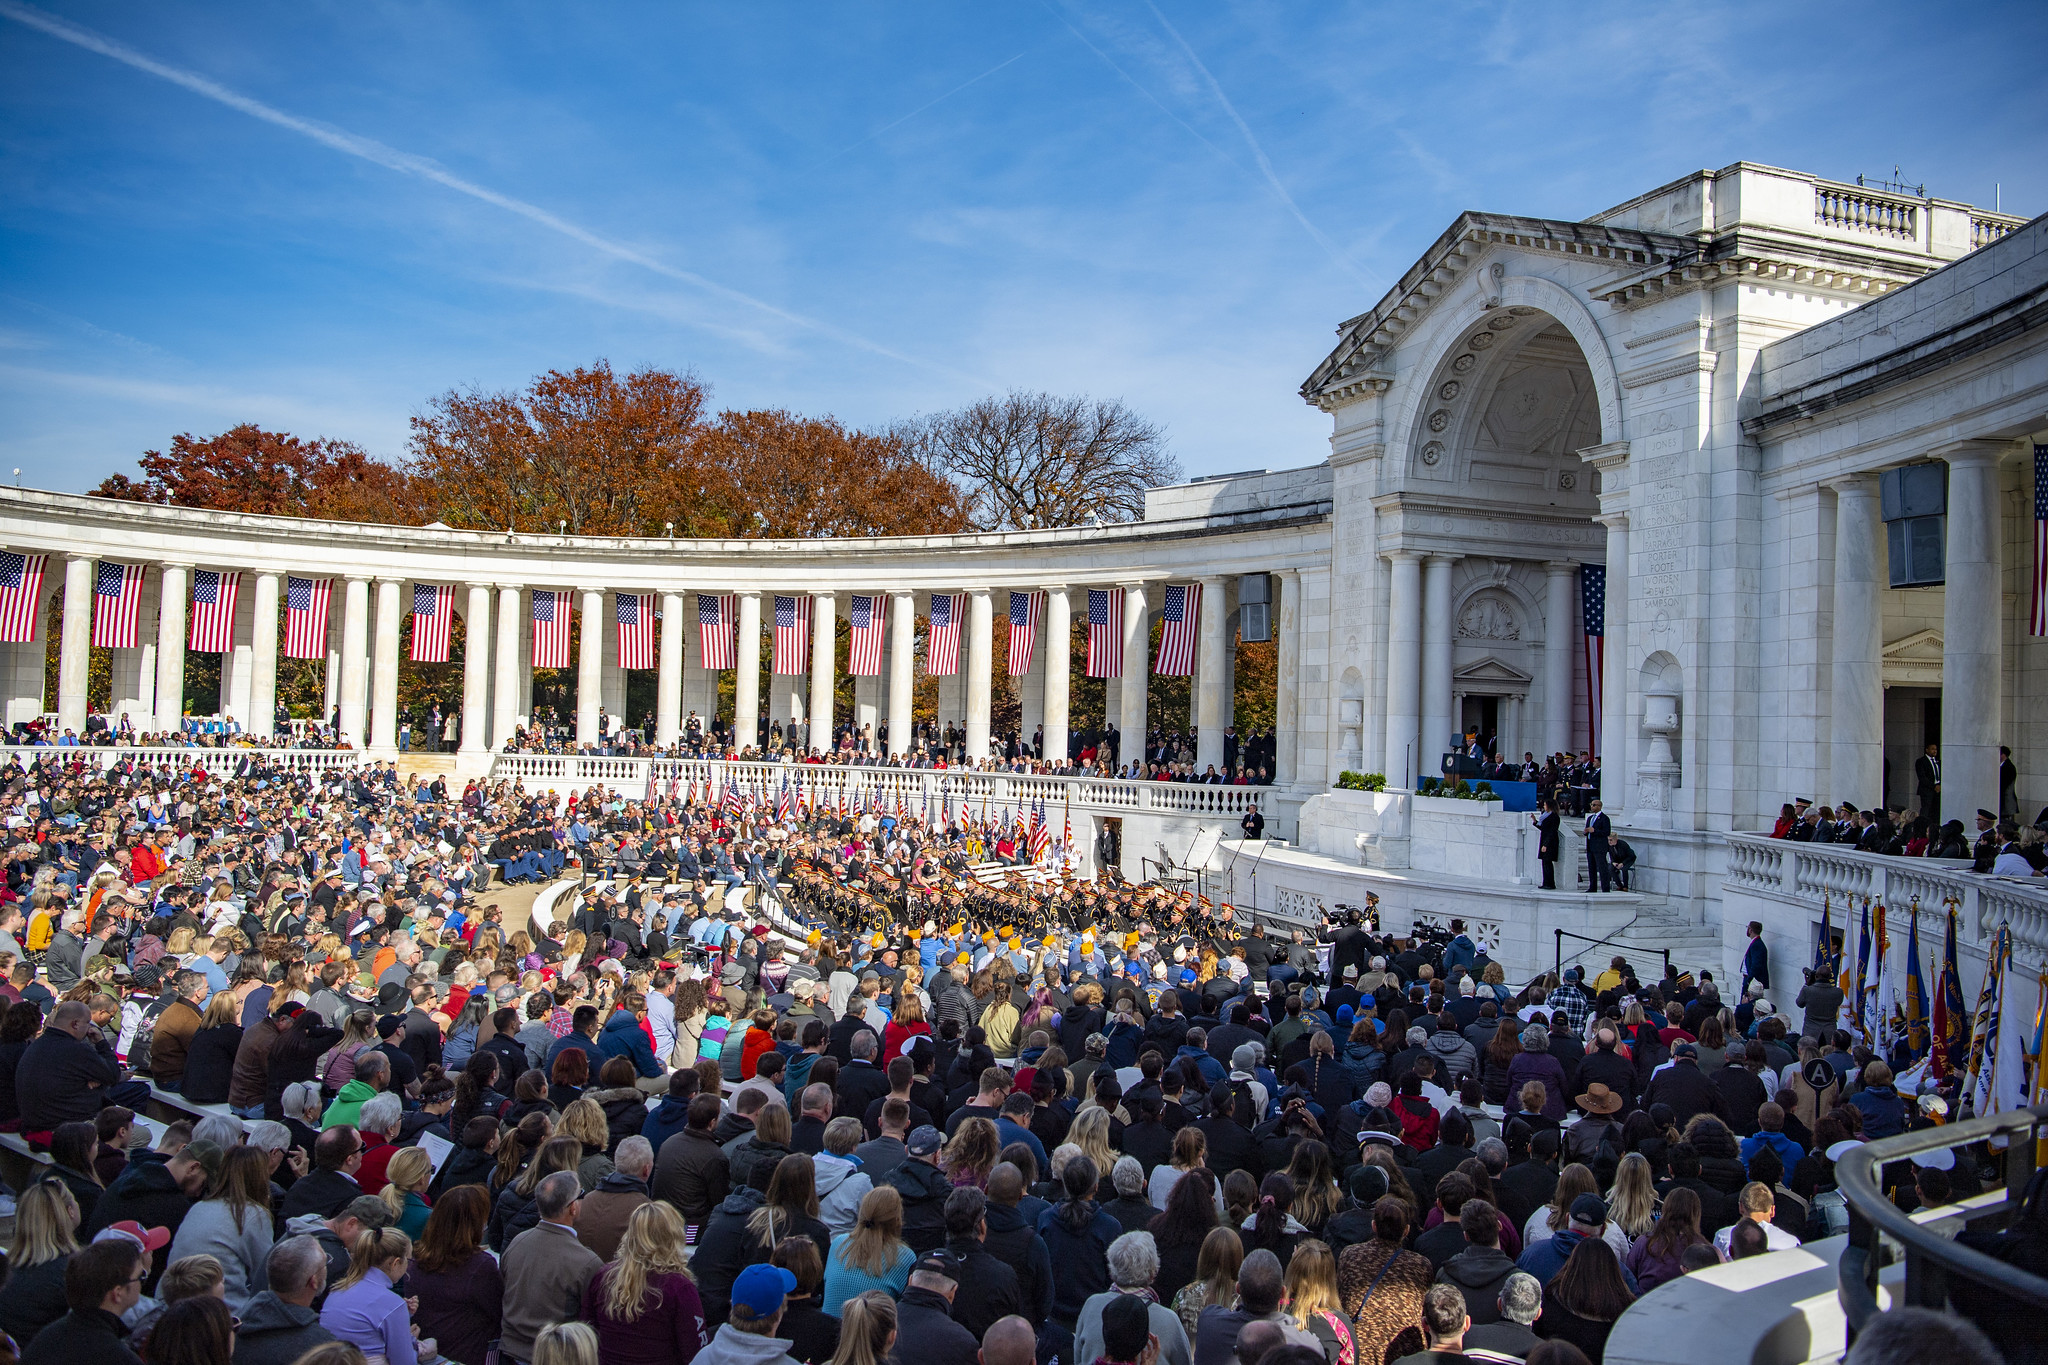 A large crowd at Memorial Amphitheater for National Veterans Day Observance 2019